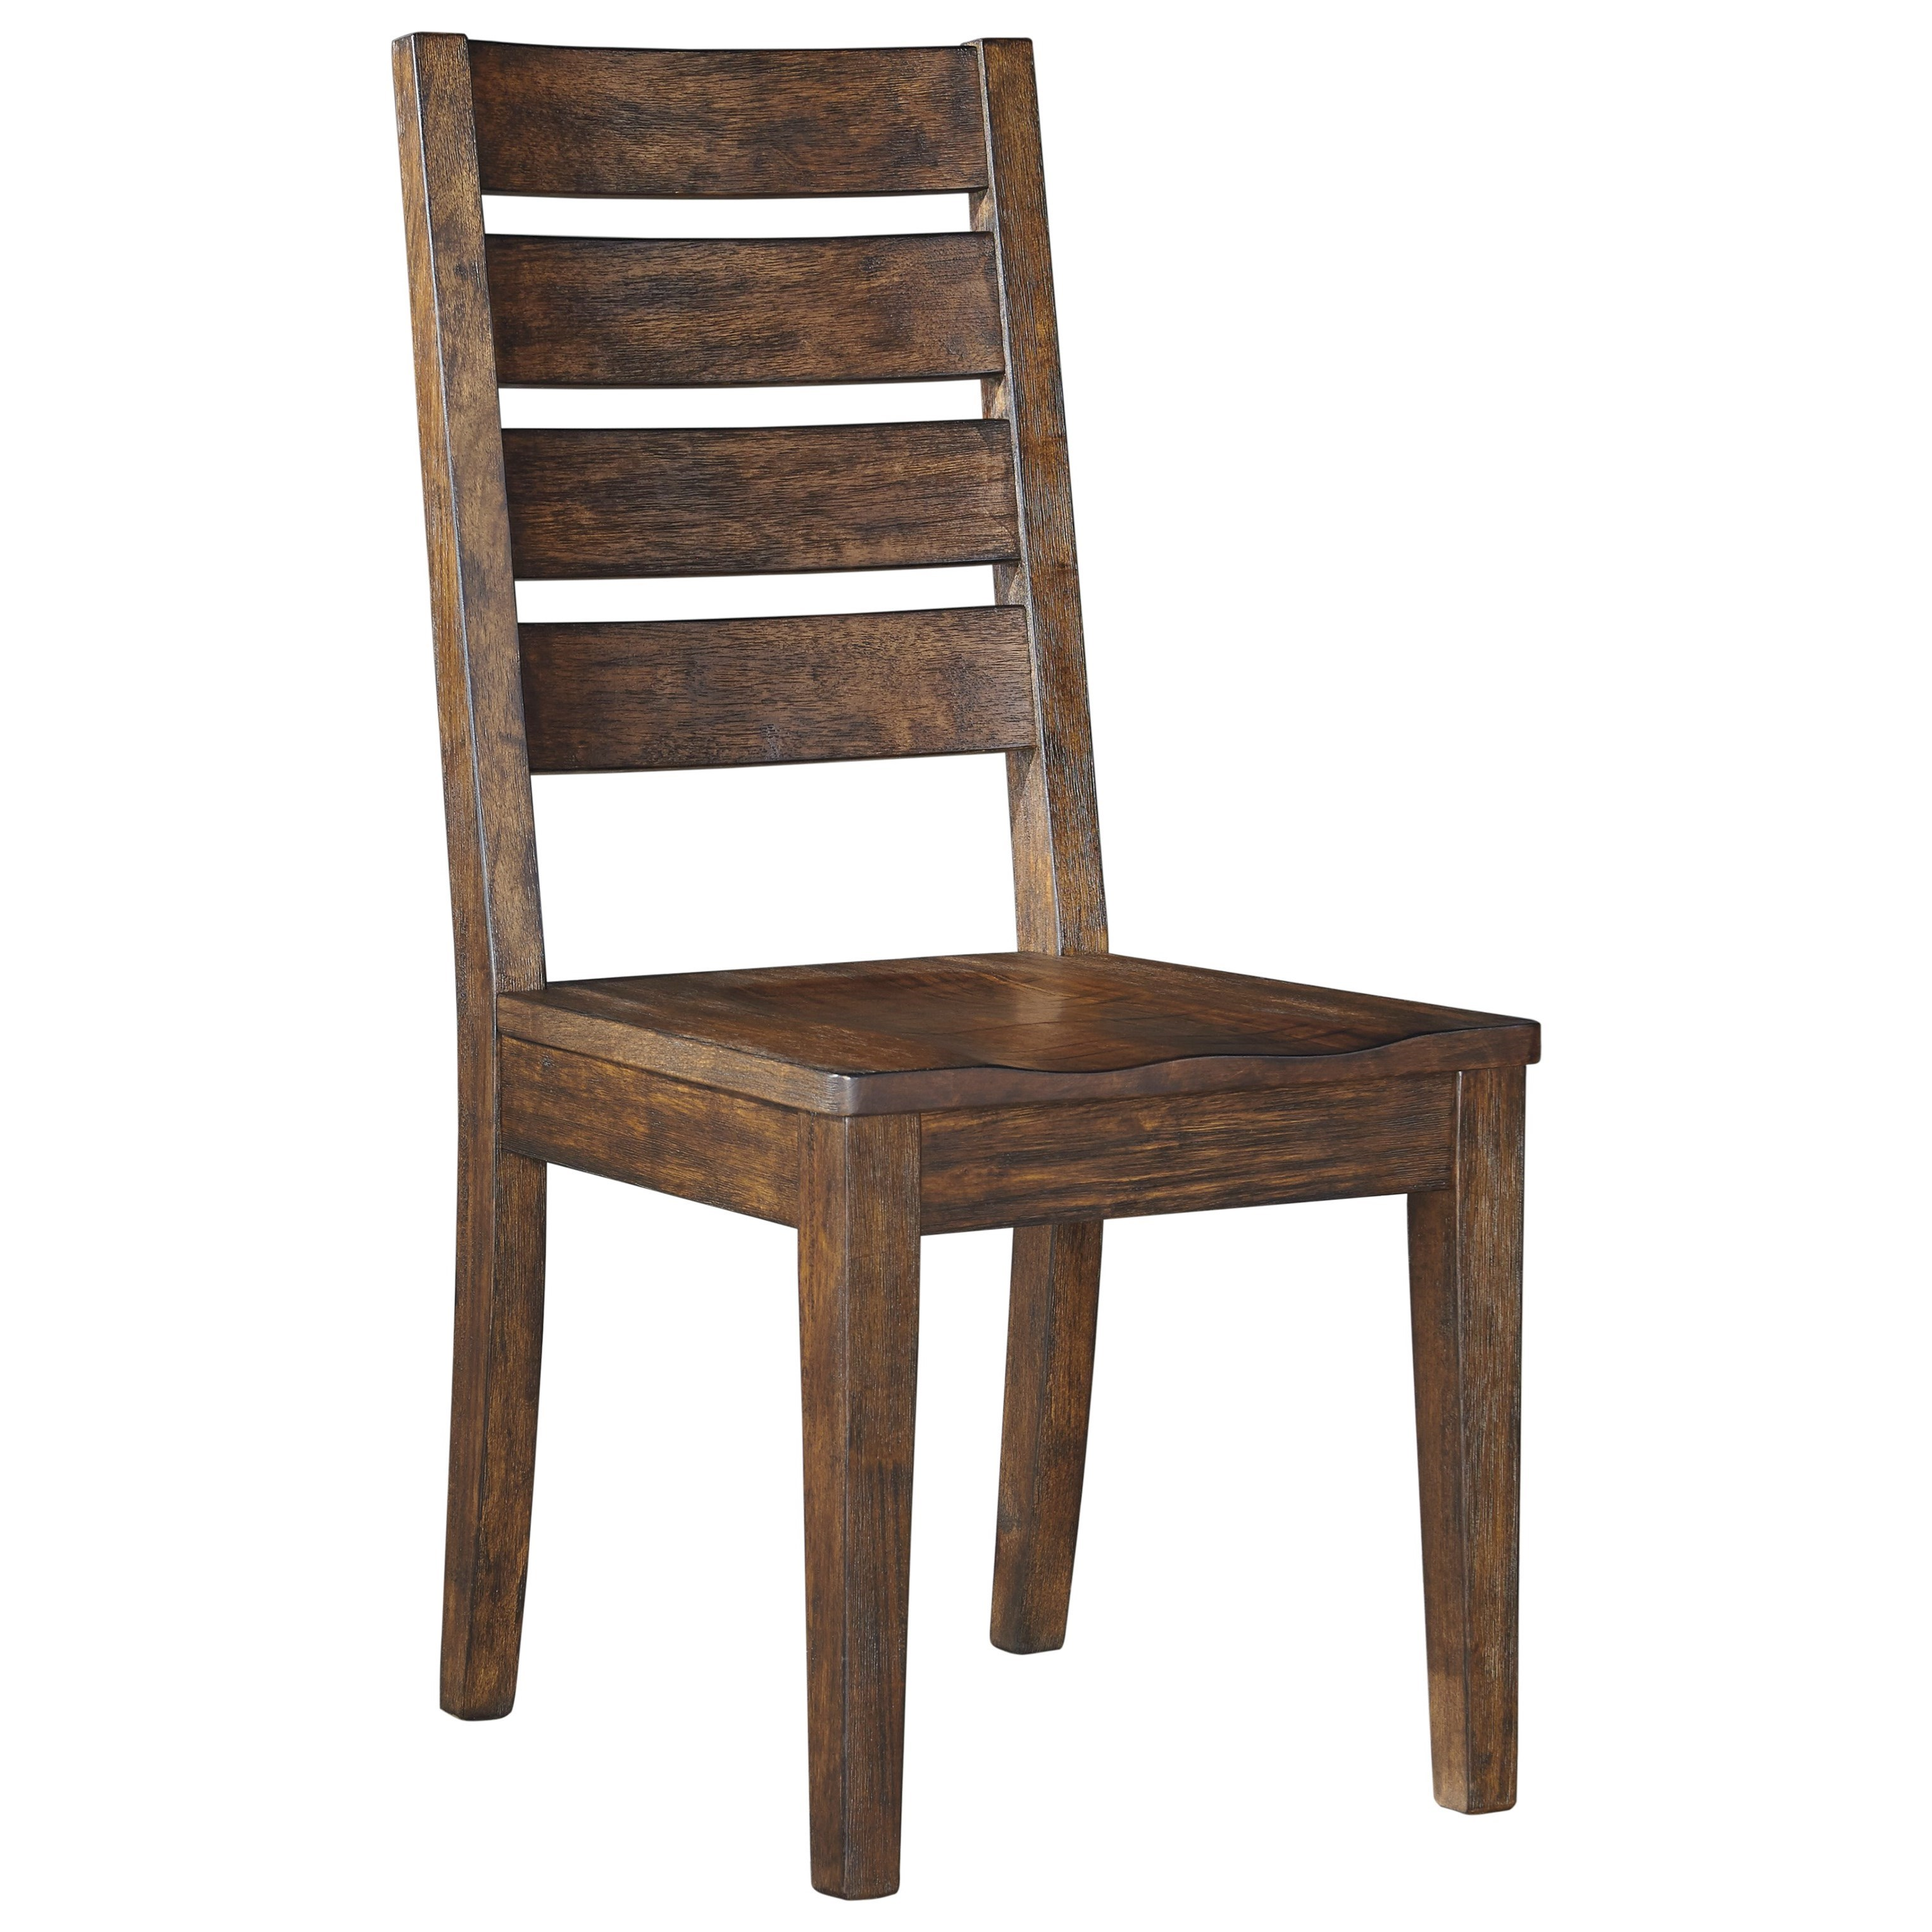 Signature Design by Ashley Leystone Dining Side Chair - Item Number: D614-01